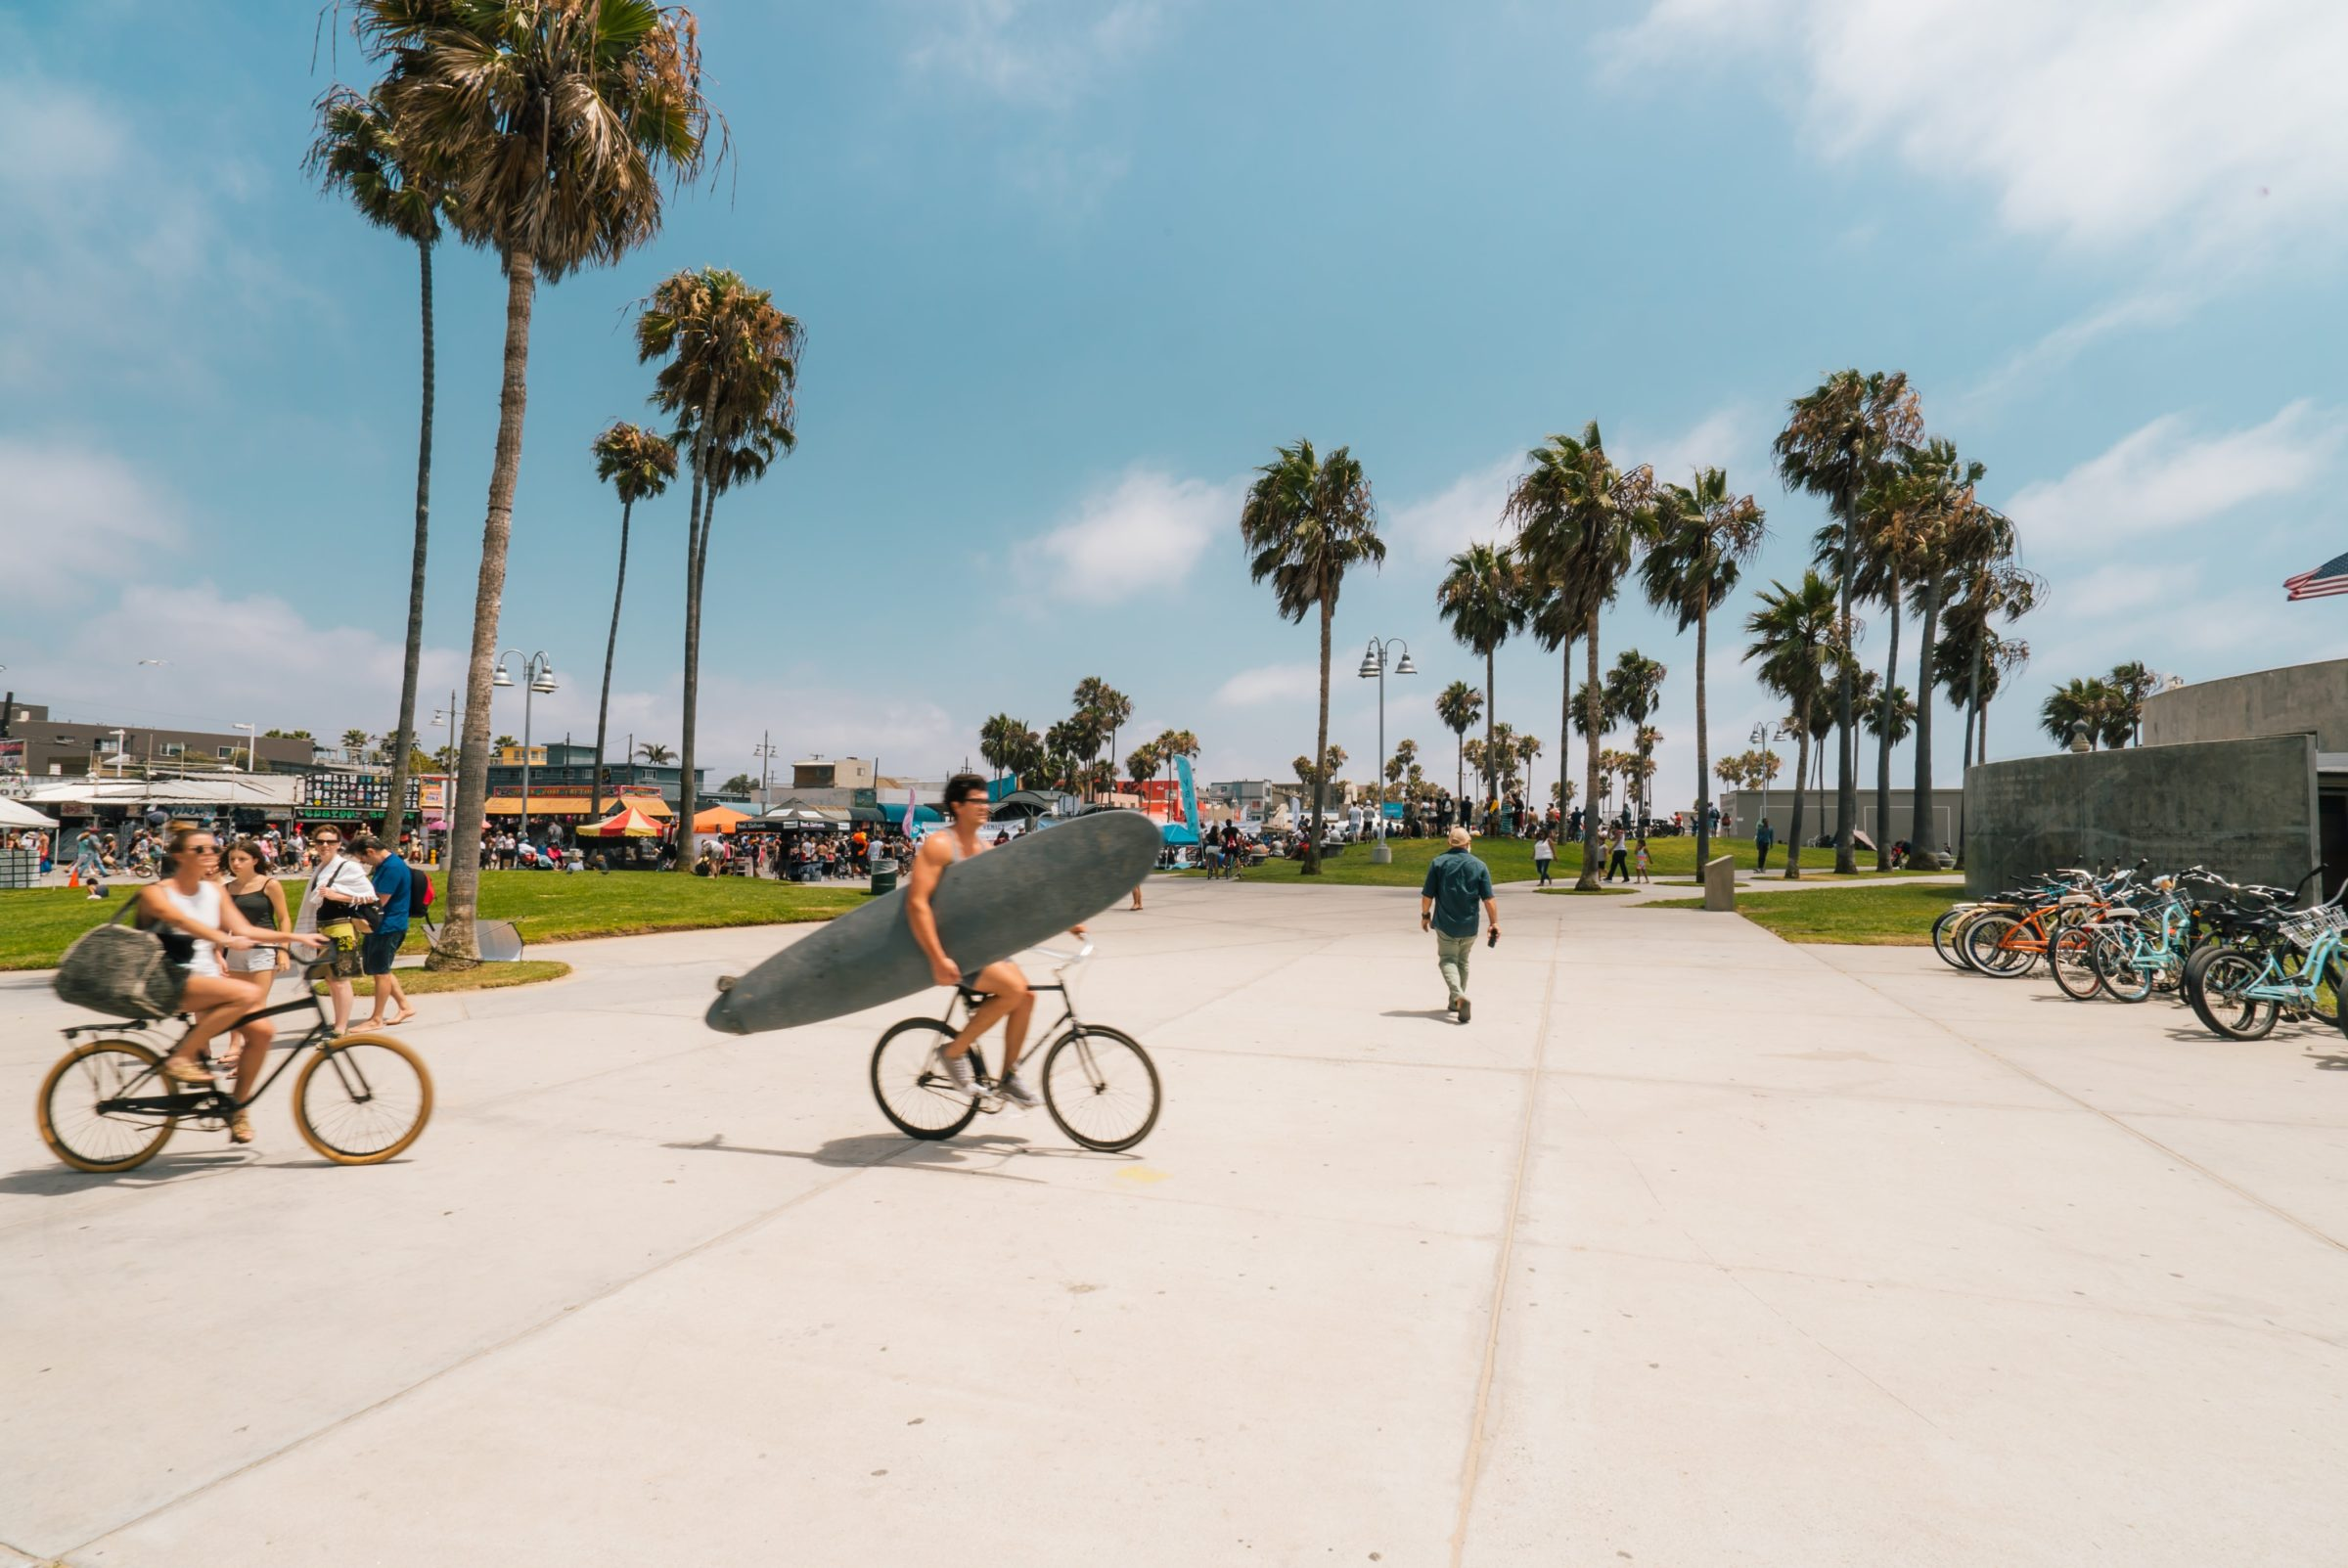 http://Man%20on%20a%20bike%20holding%20surfboard%20at%20the%20beach